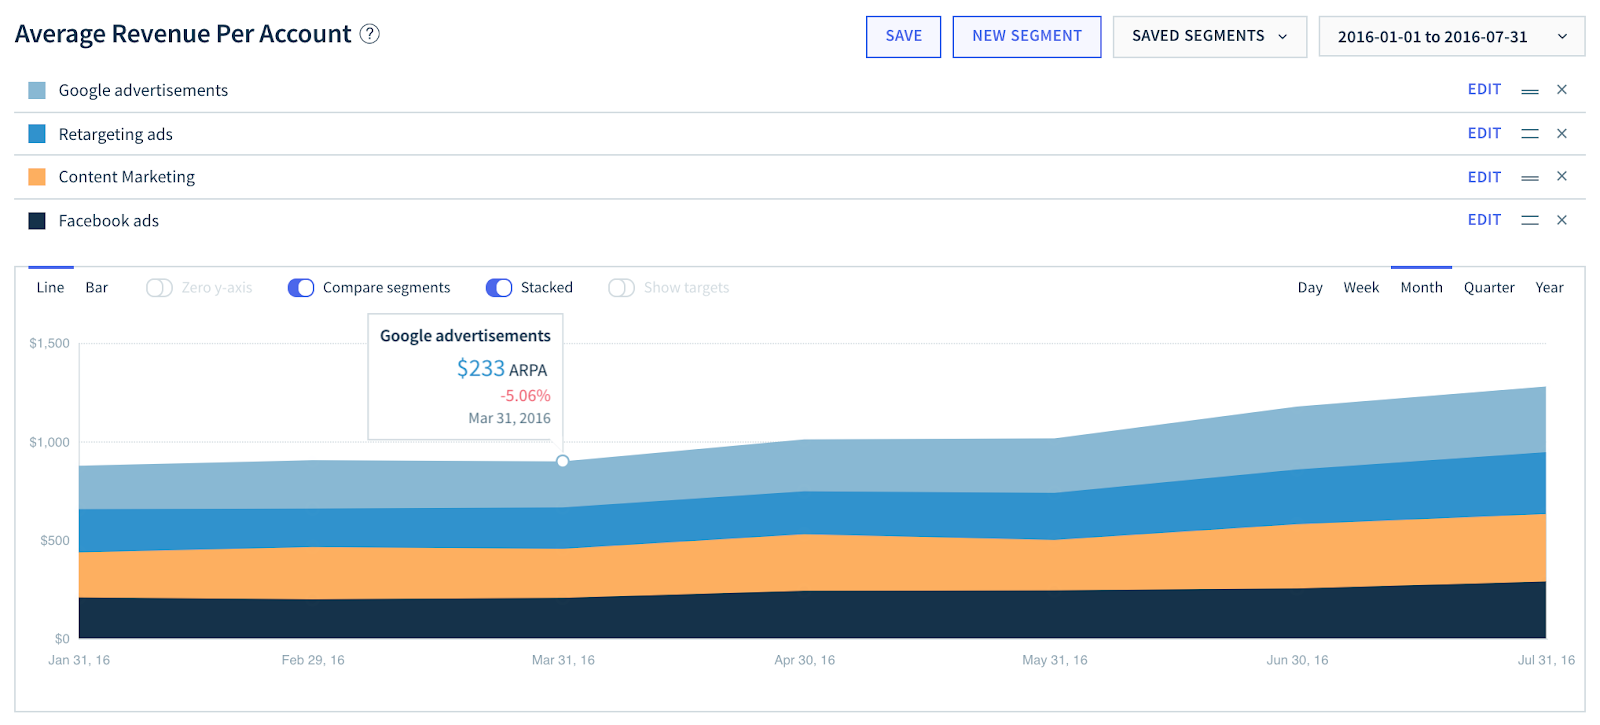 ARPU segmented by marketing channel inside ChartMogul